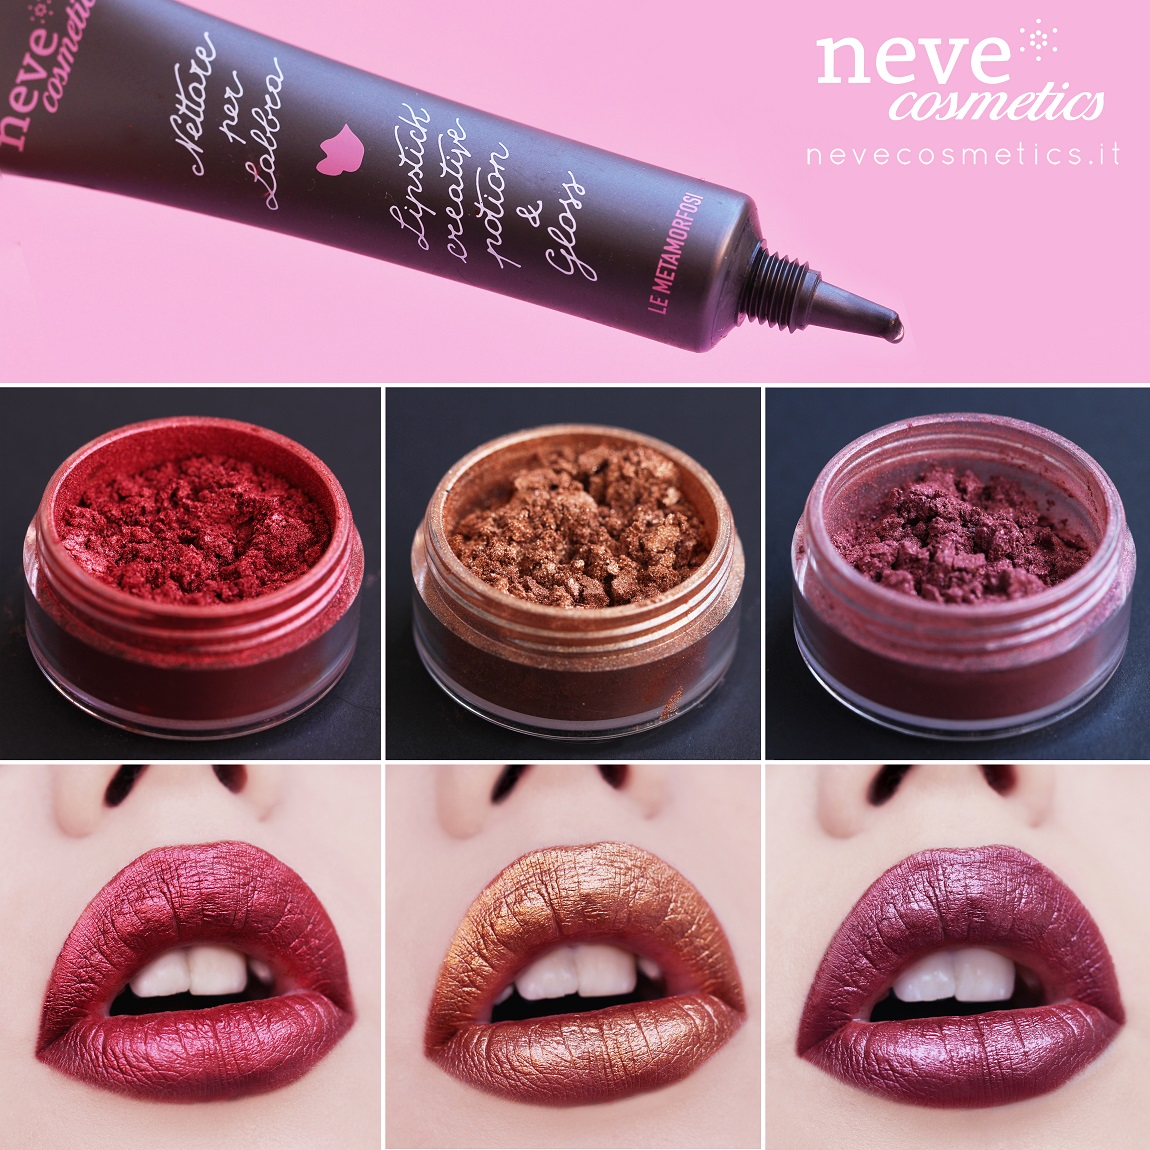 How to create beautiful lipsticks with Nectar for lips.